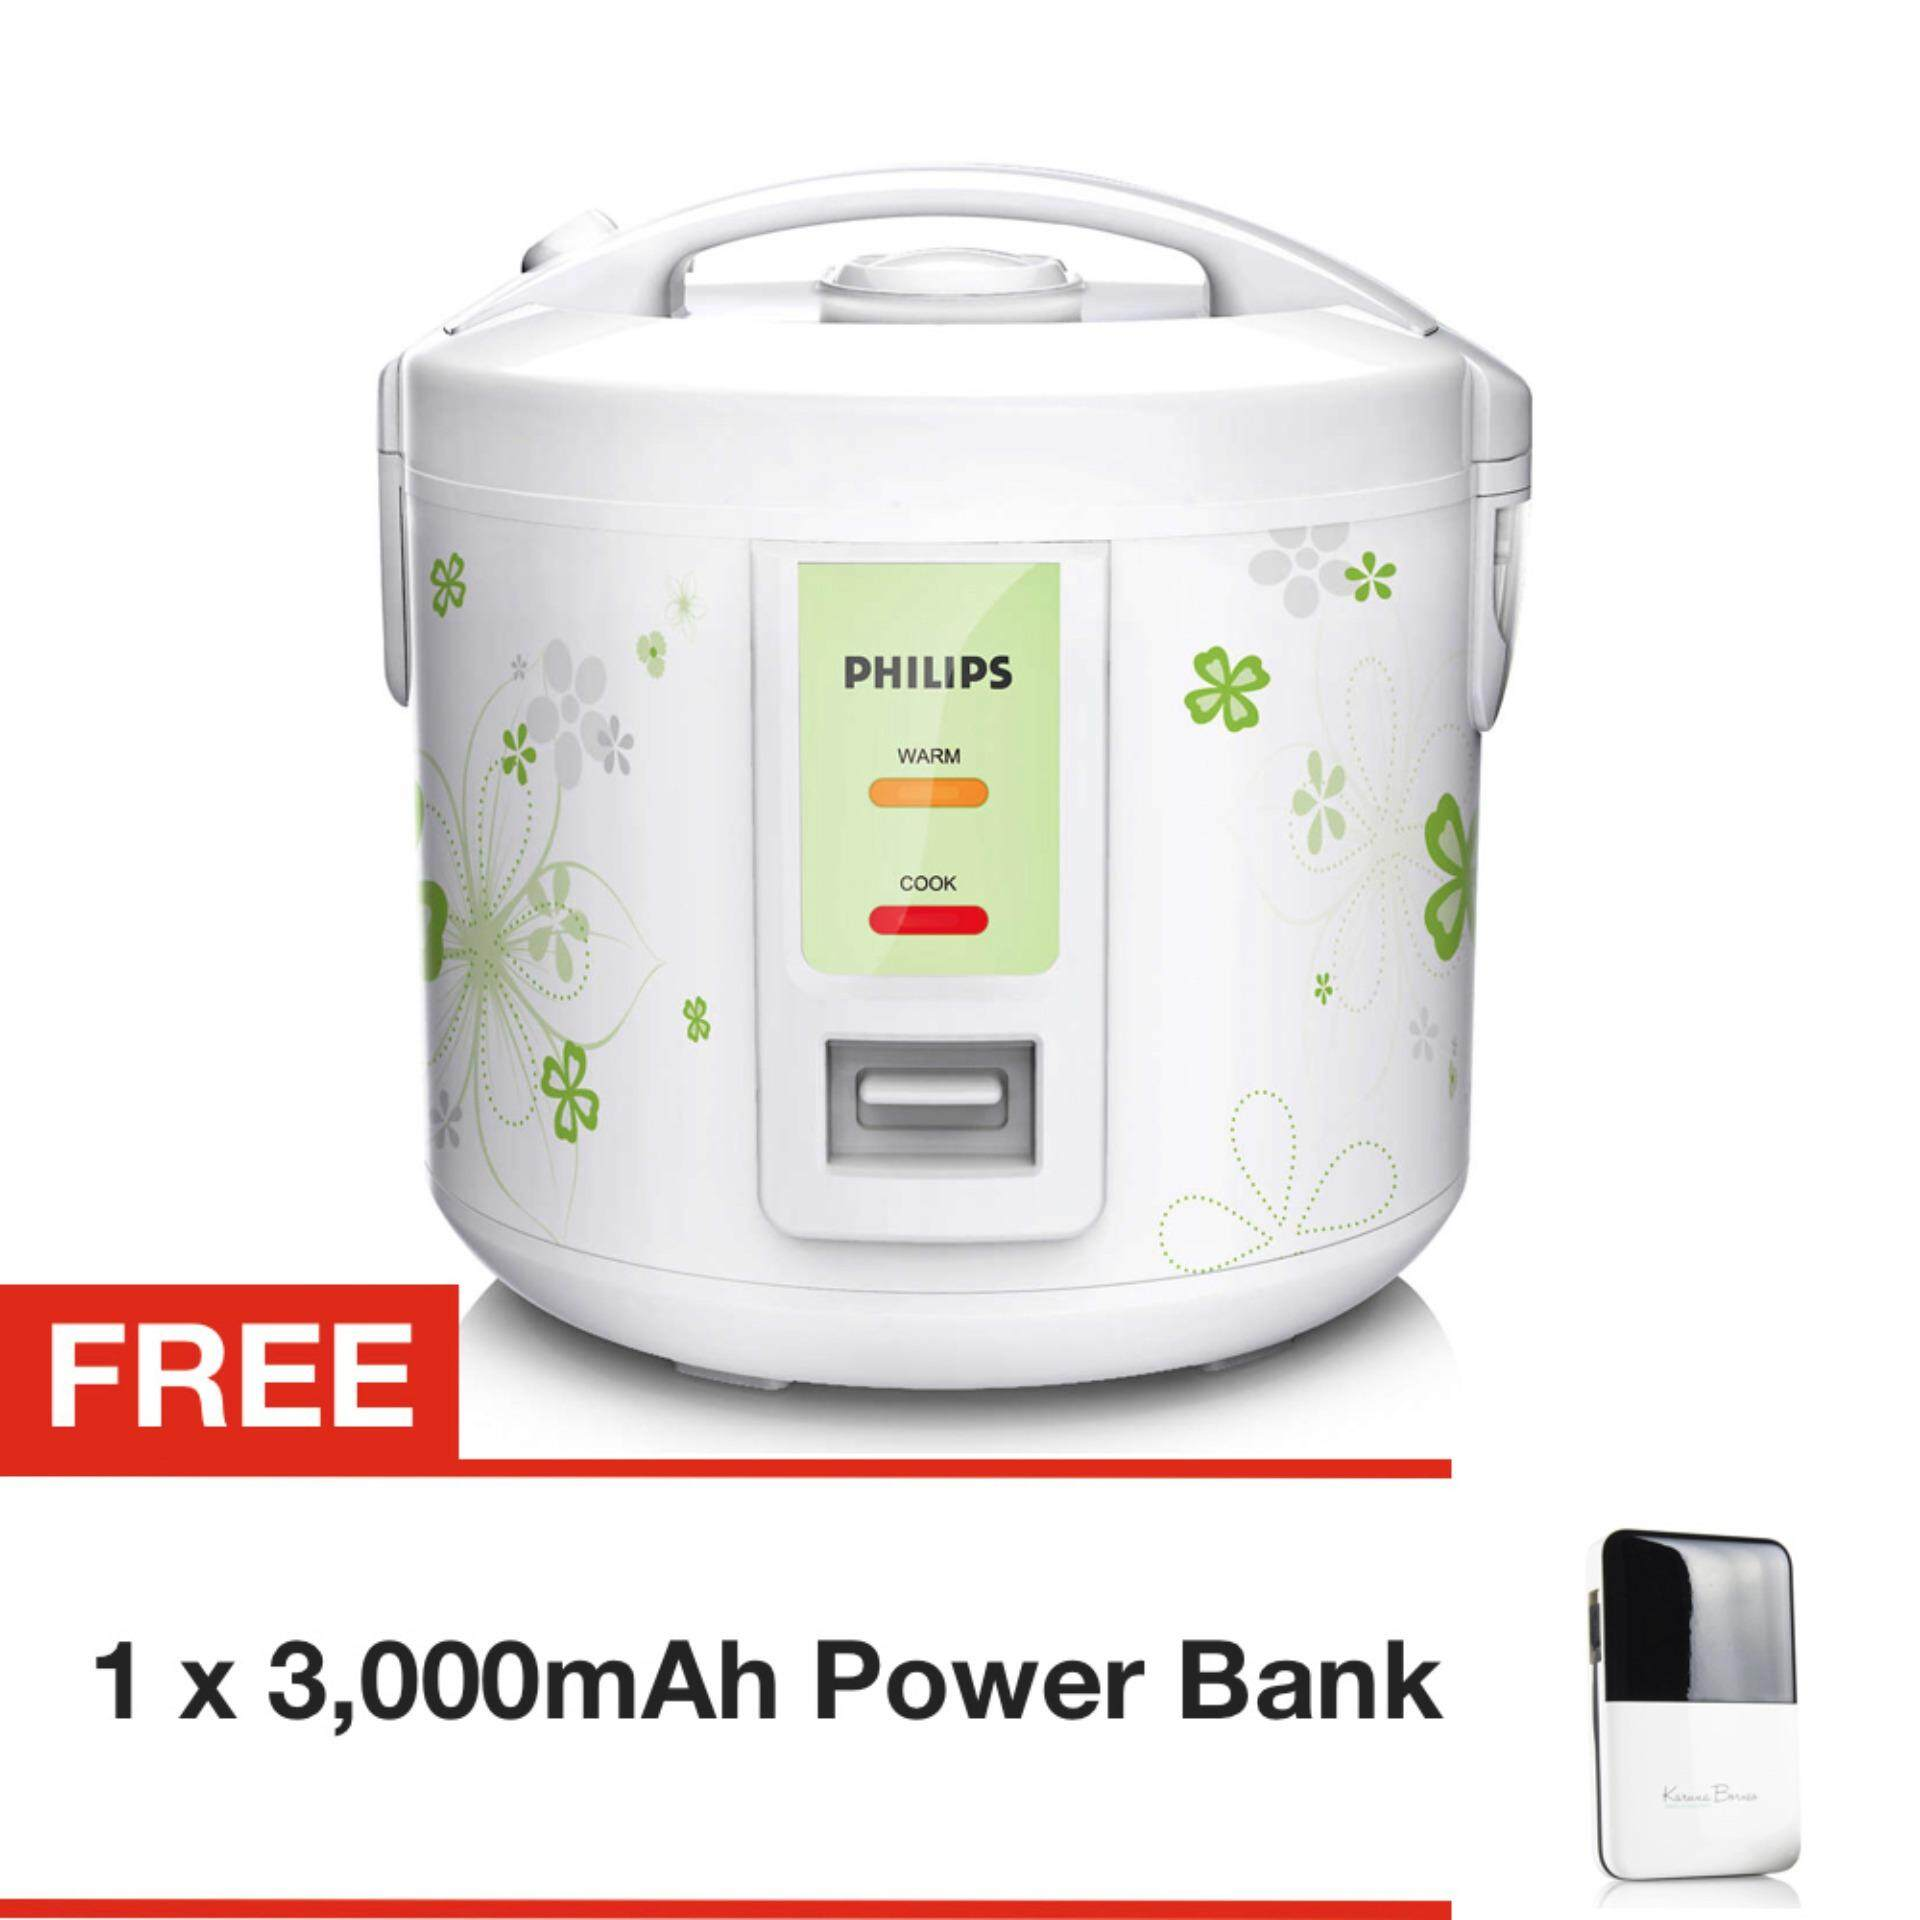 Philips 1.0L Jar Rice Cooker HD3011 with FREE 3,000 mAh Lithium Polymer Power Bank